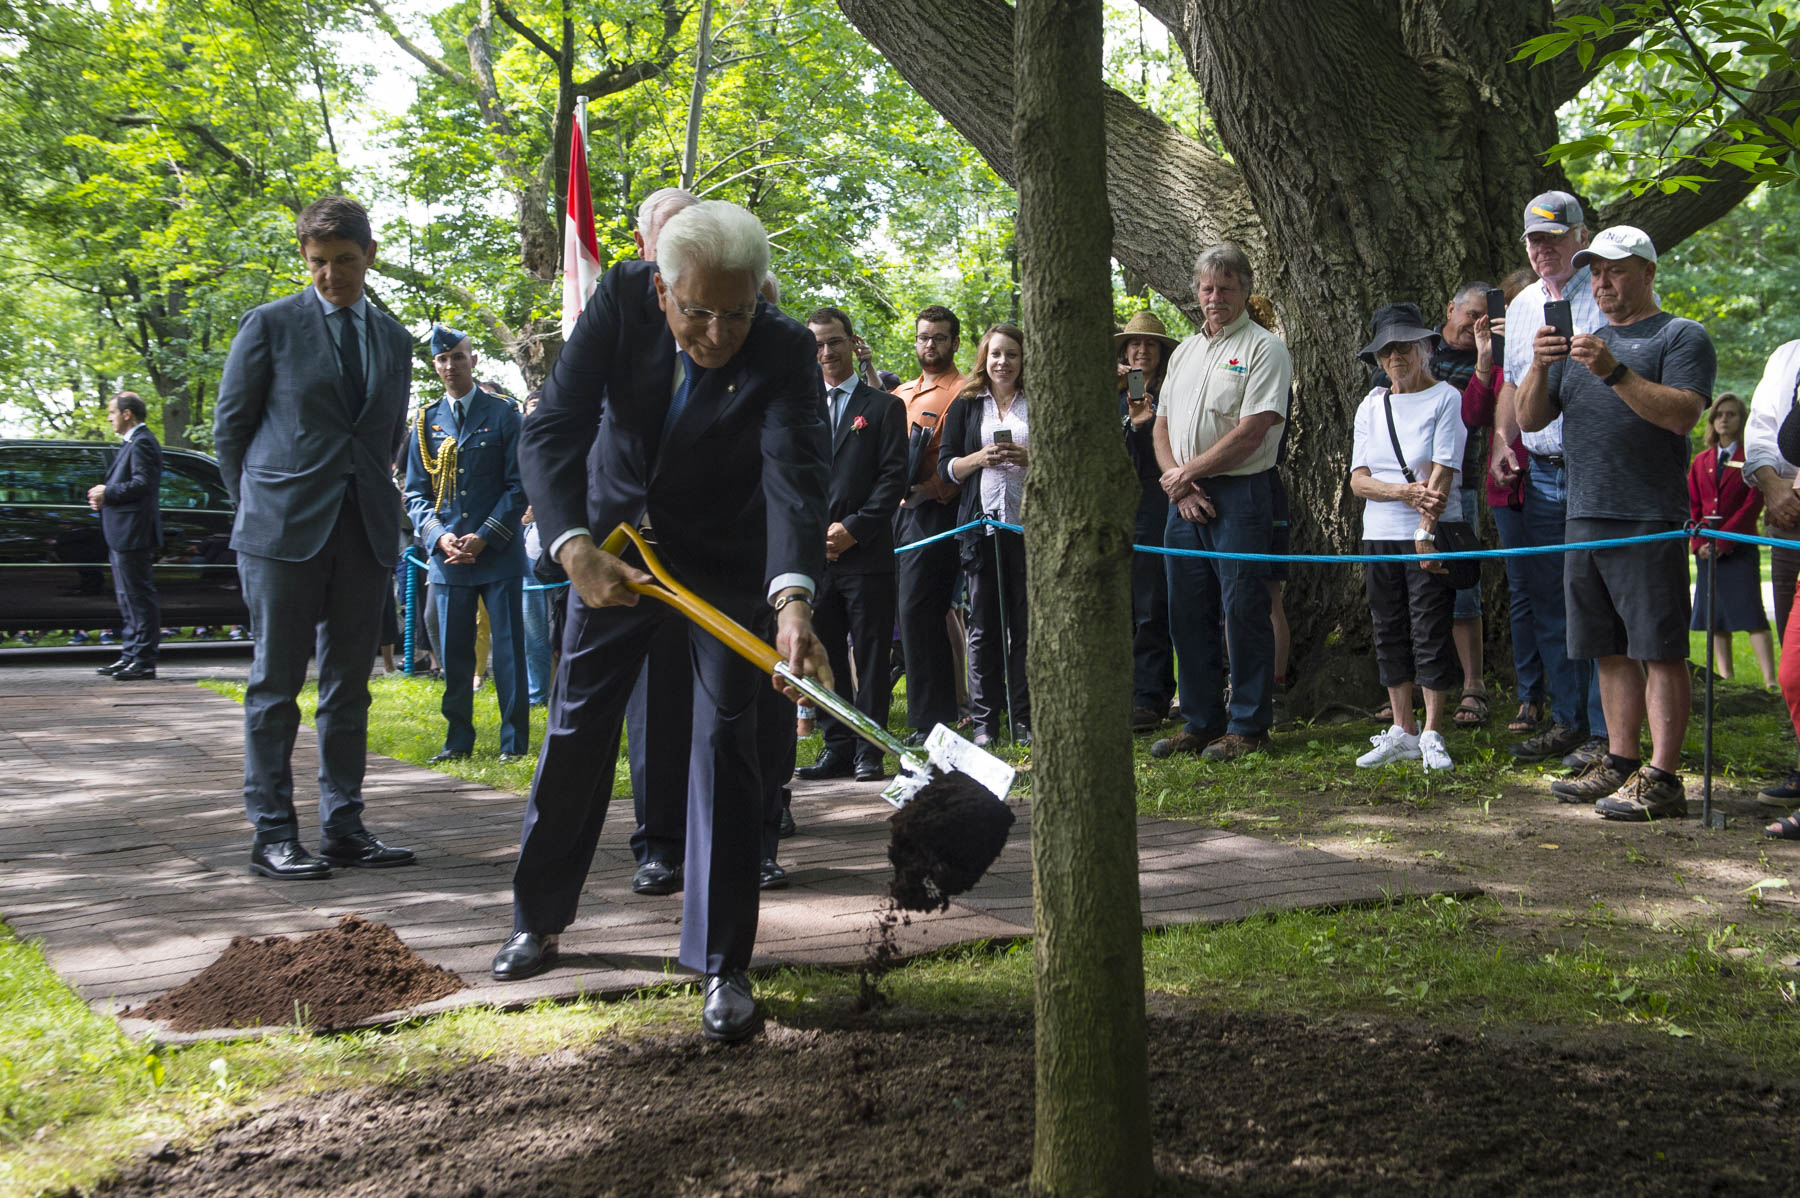 To mark his visit to Rideau Hall, the President planted a Buckeye on the grounds. The tree also marks 70 years of diplomatic relations between Canada and Italy. on the grounds a